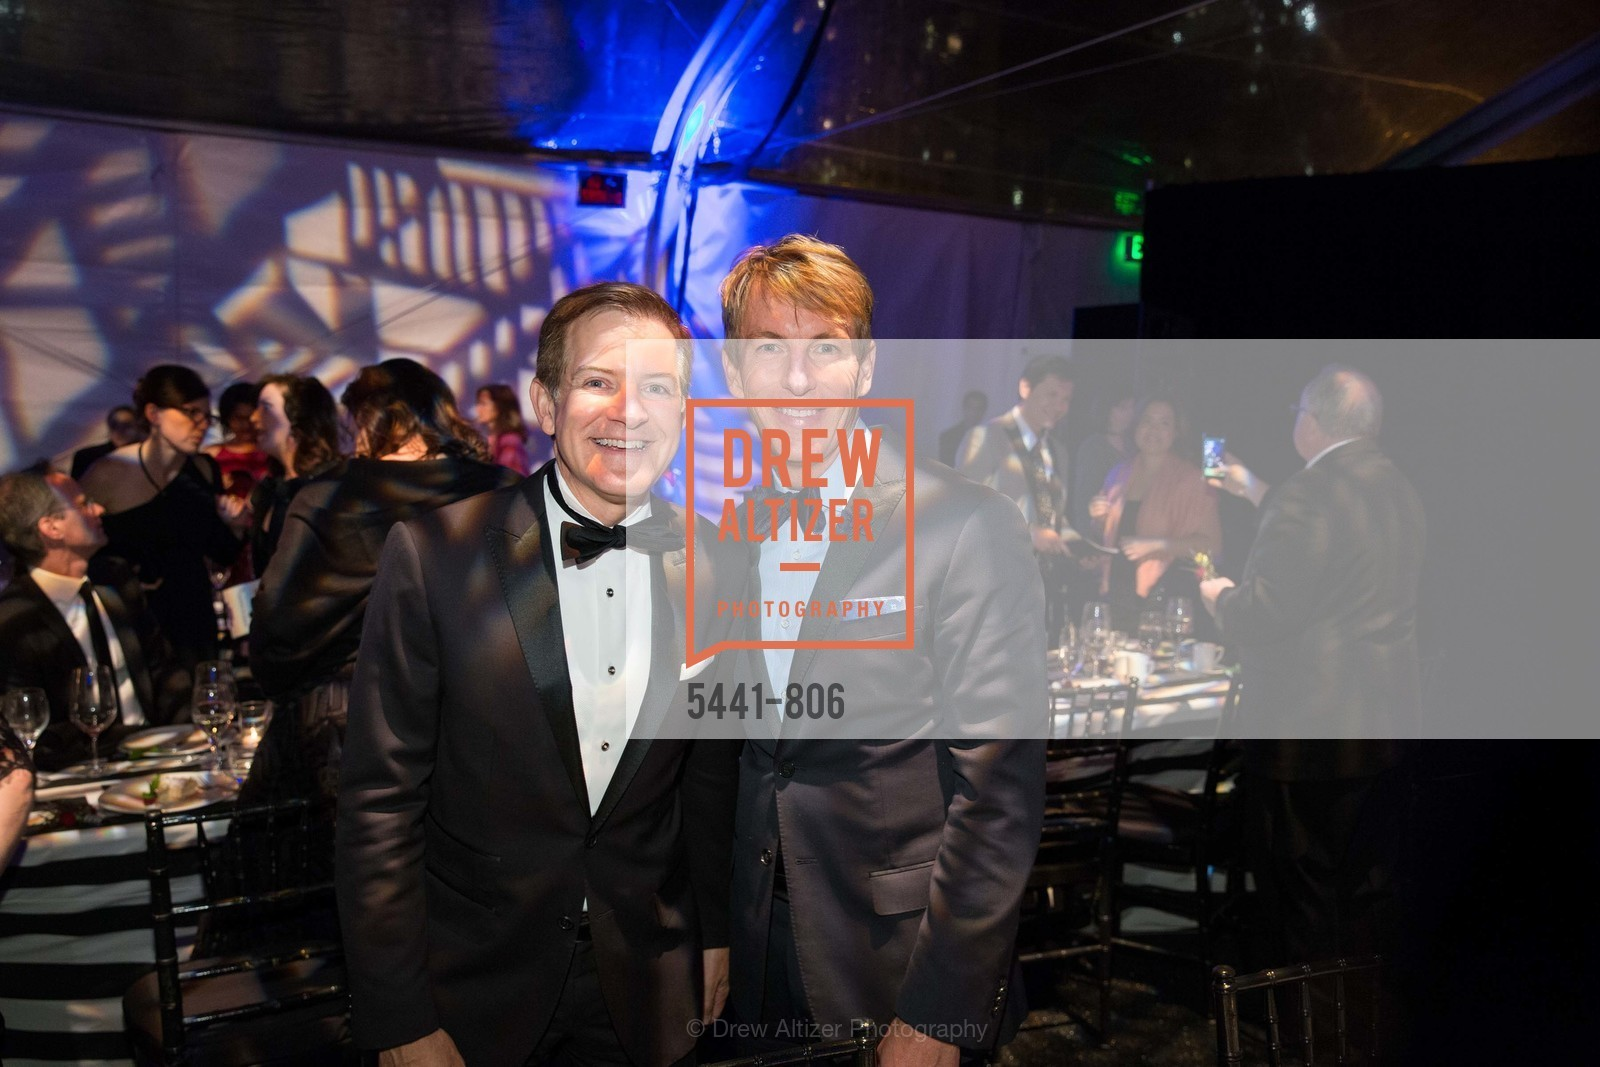 Trent Norris, Jack Calhoun, A.C.T. Gala Come Get Stranded, US, April 26th, 2015,Drew Altizer, Drew Altizer Photography, full-service agency, private events, San Francisco photographer, photographer california